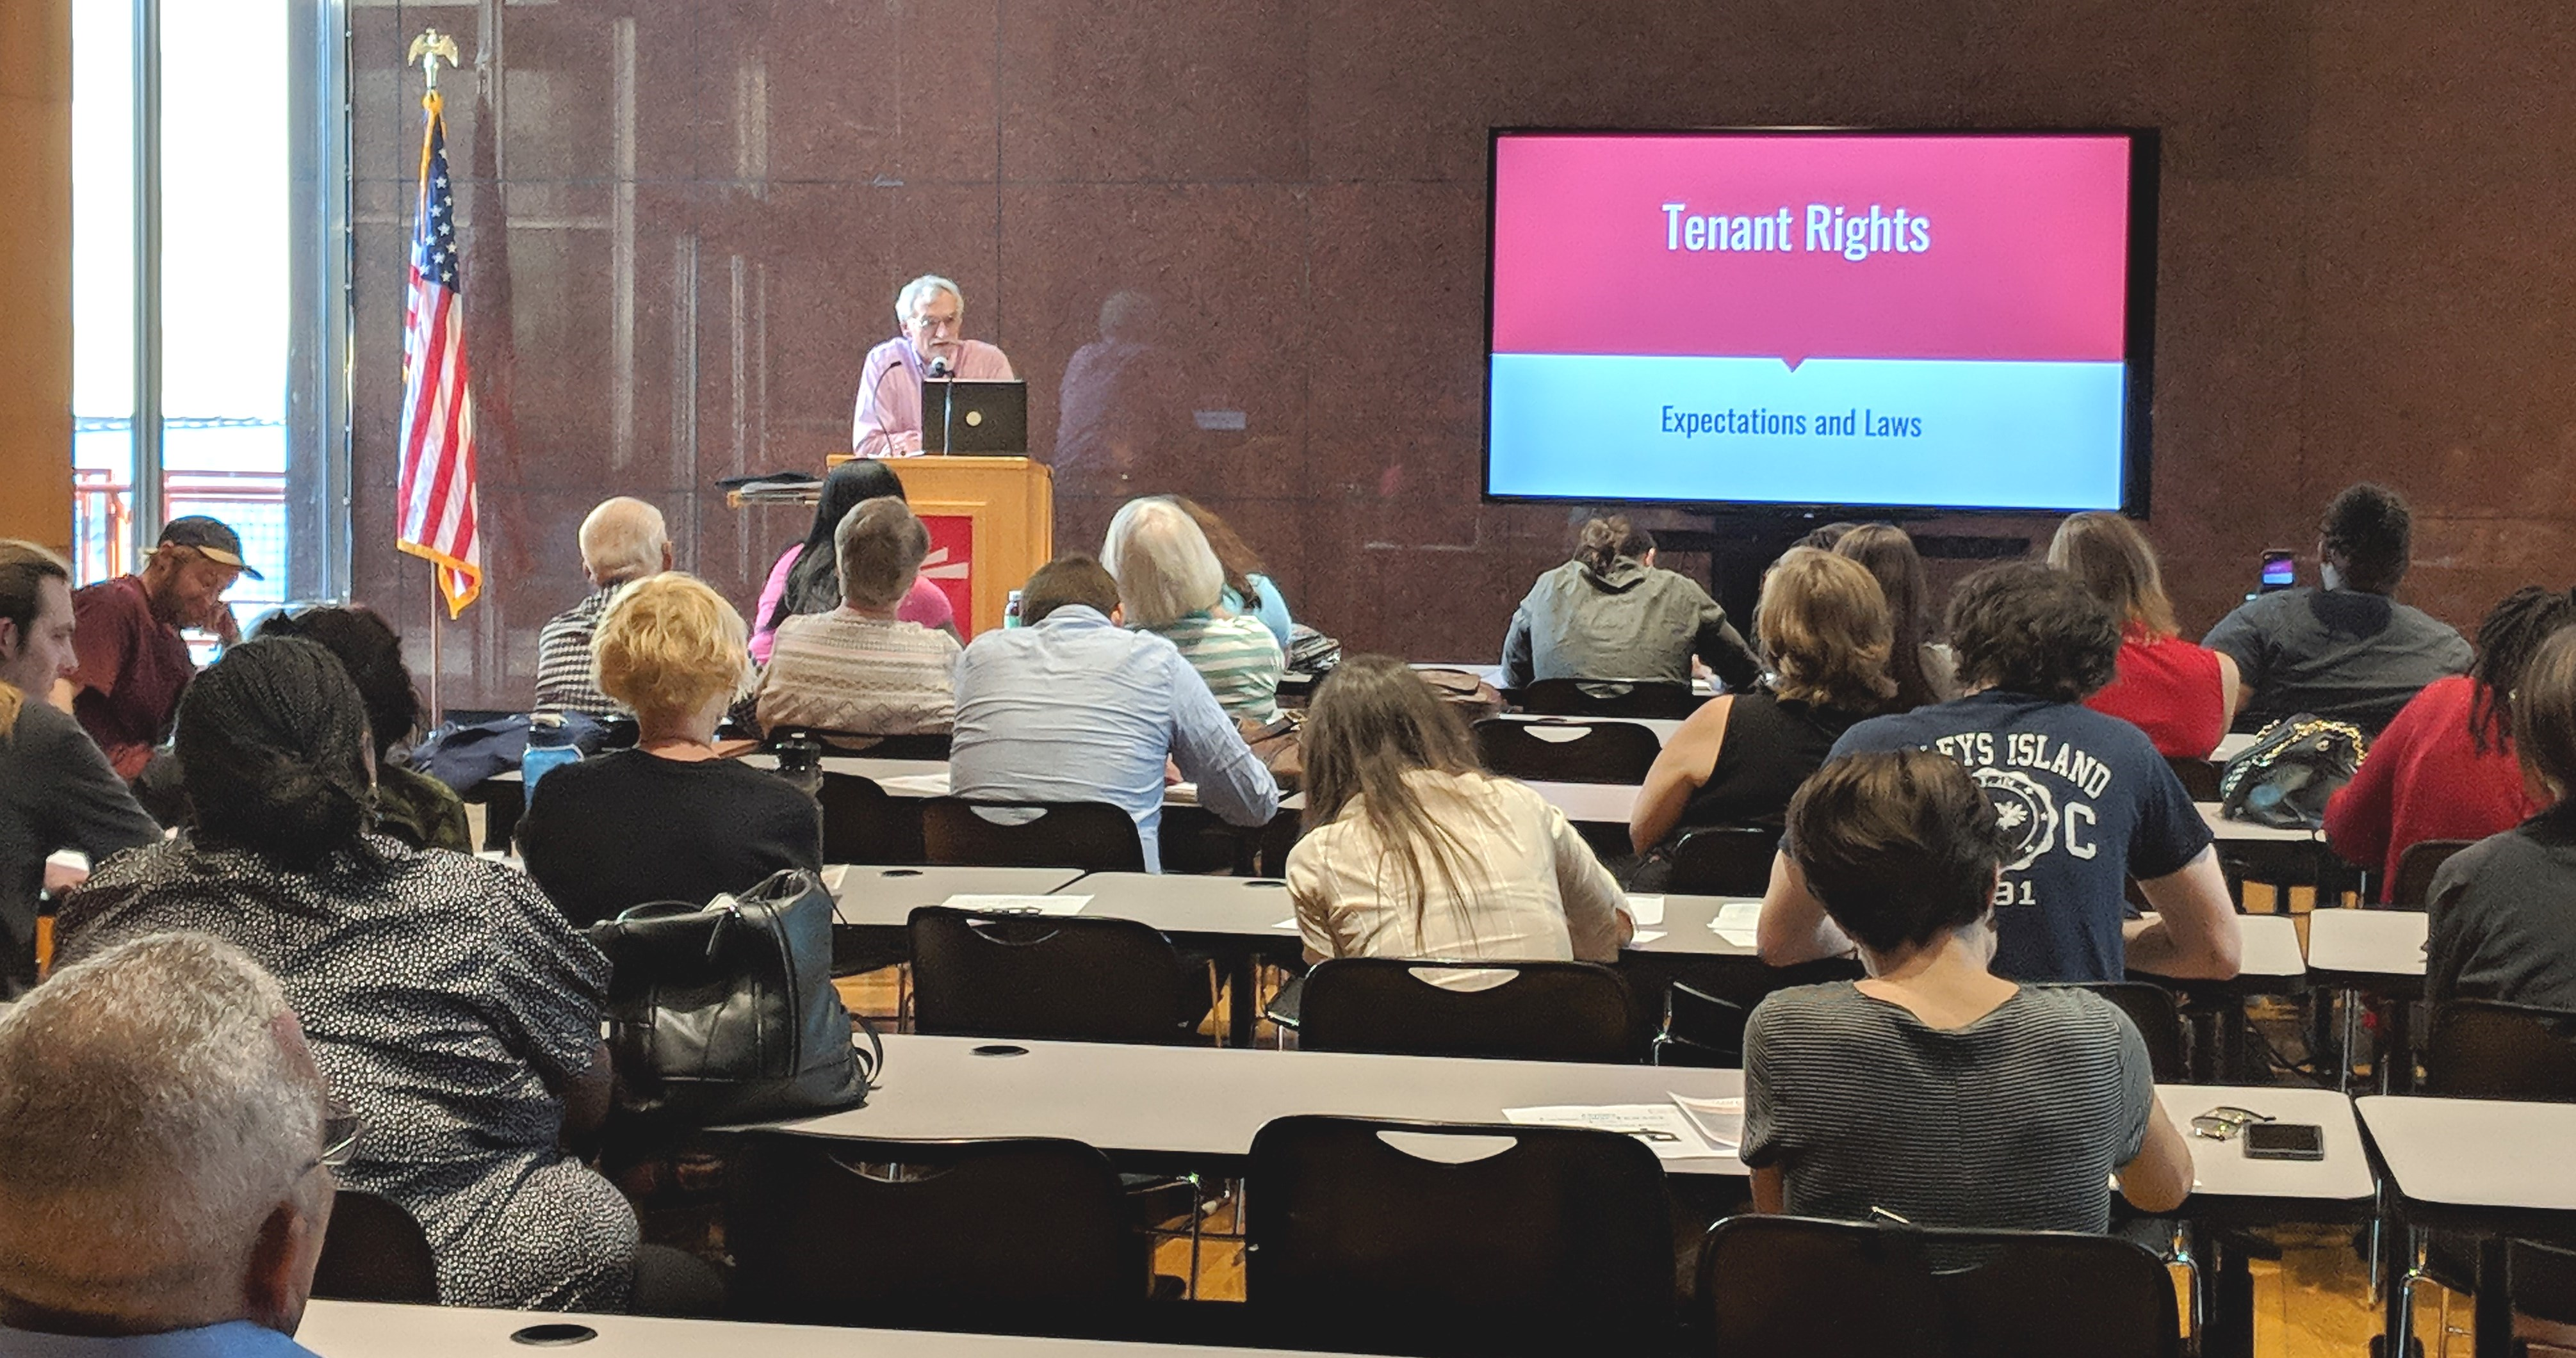 Know Your Rights Event Hosted to Educate Community On Lack of Affordable Housing